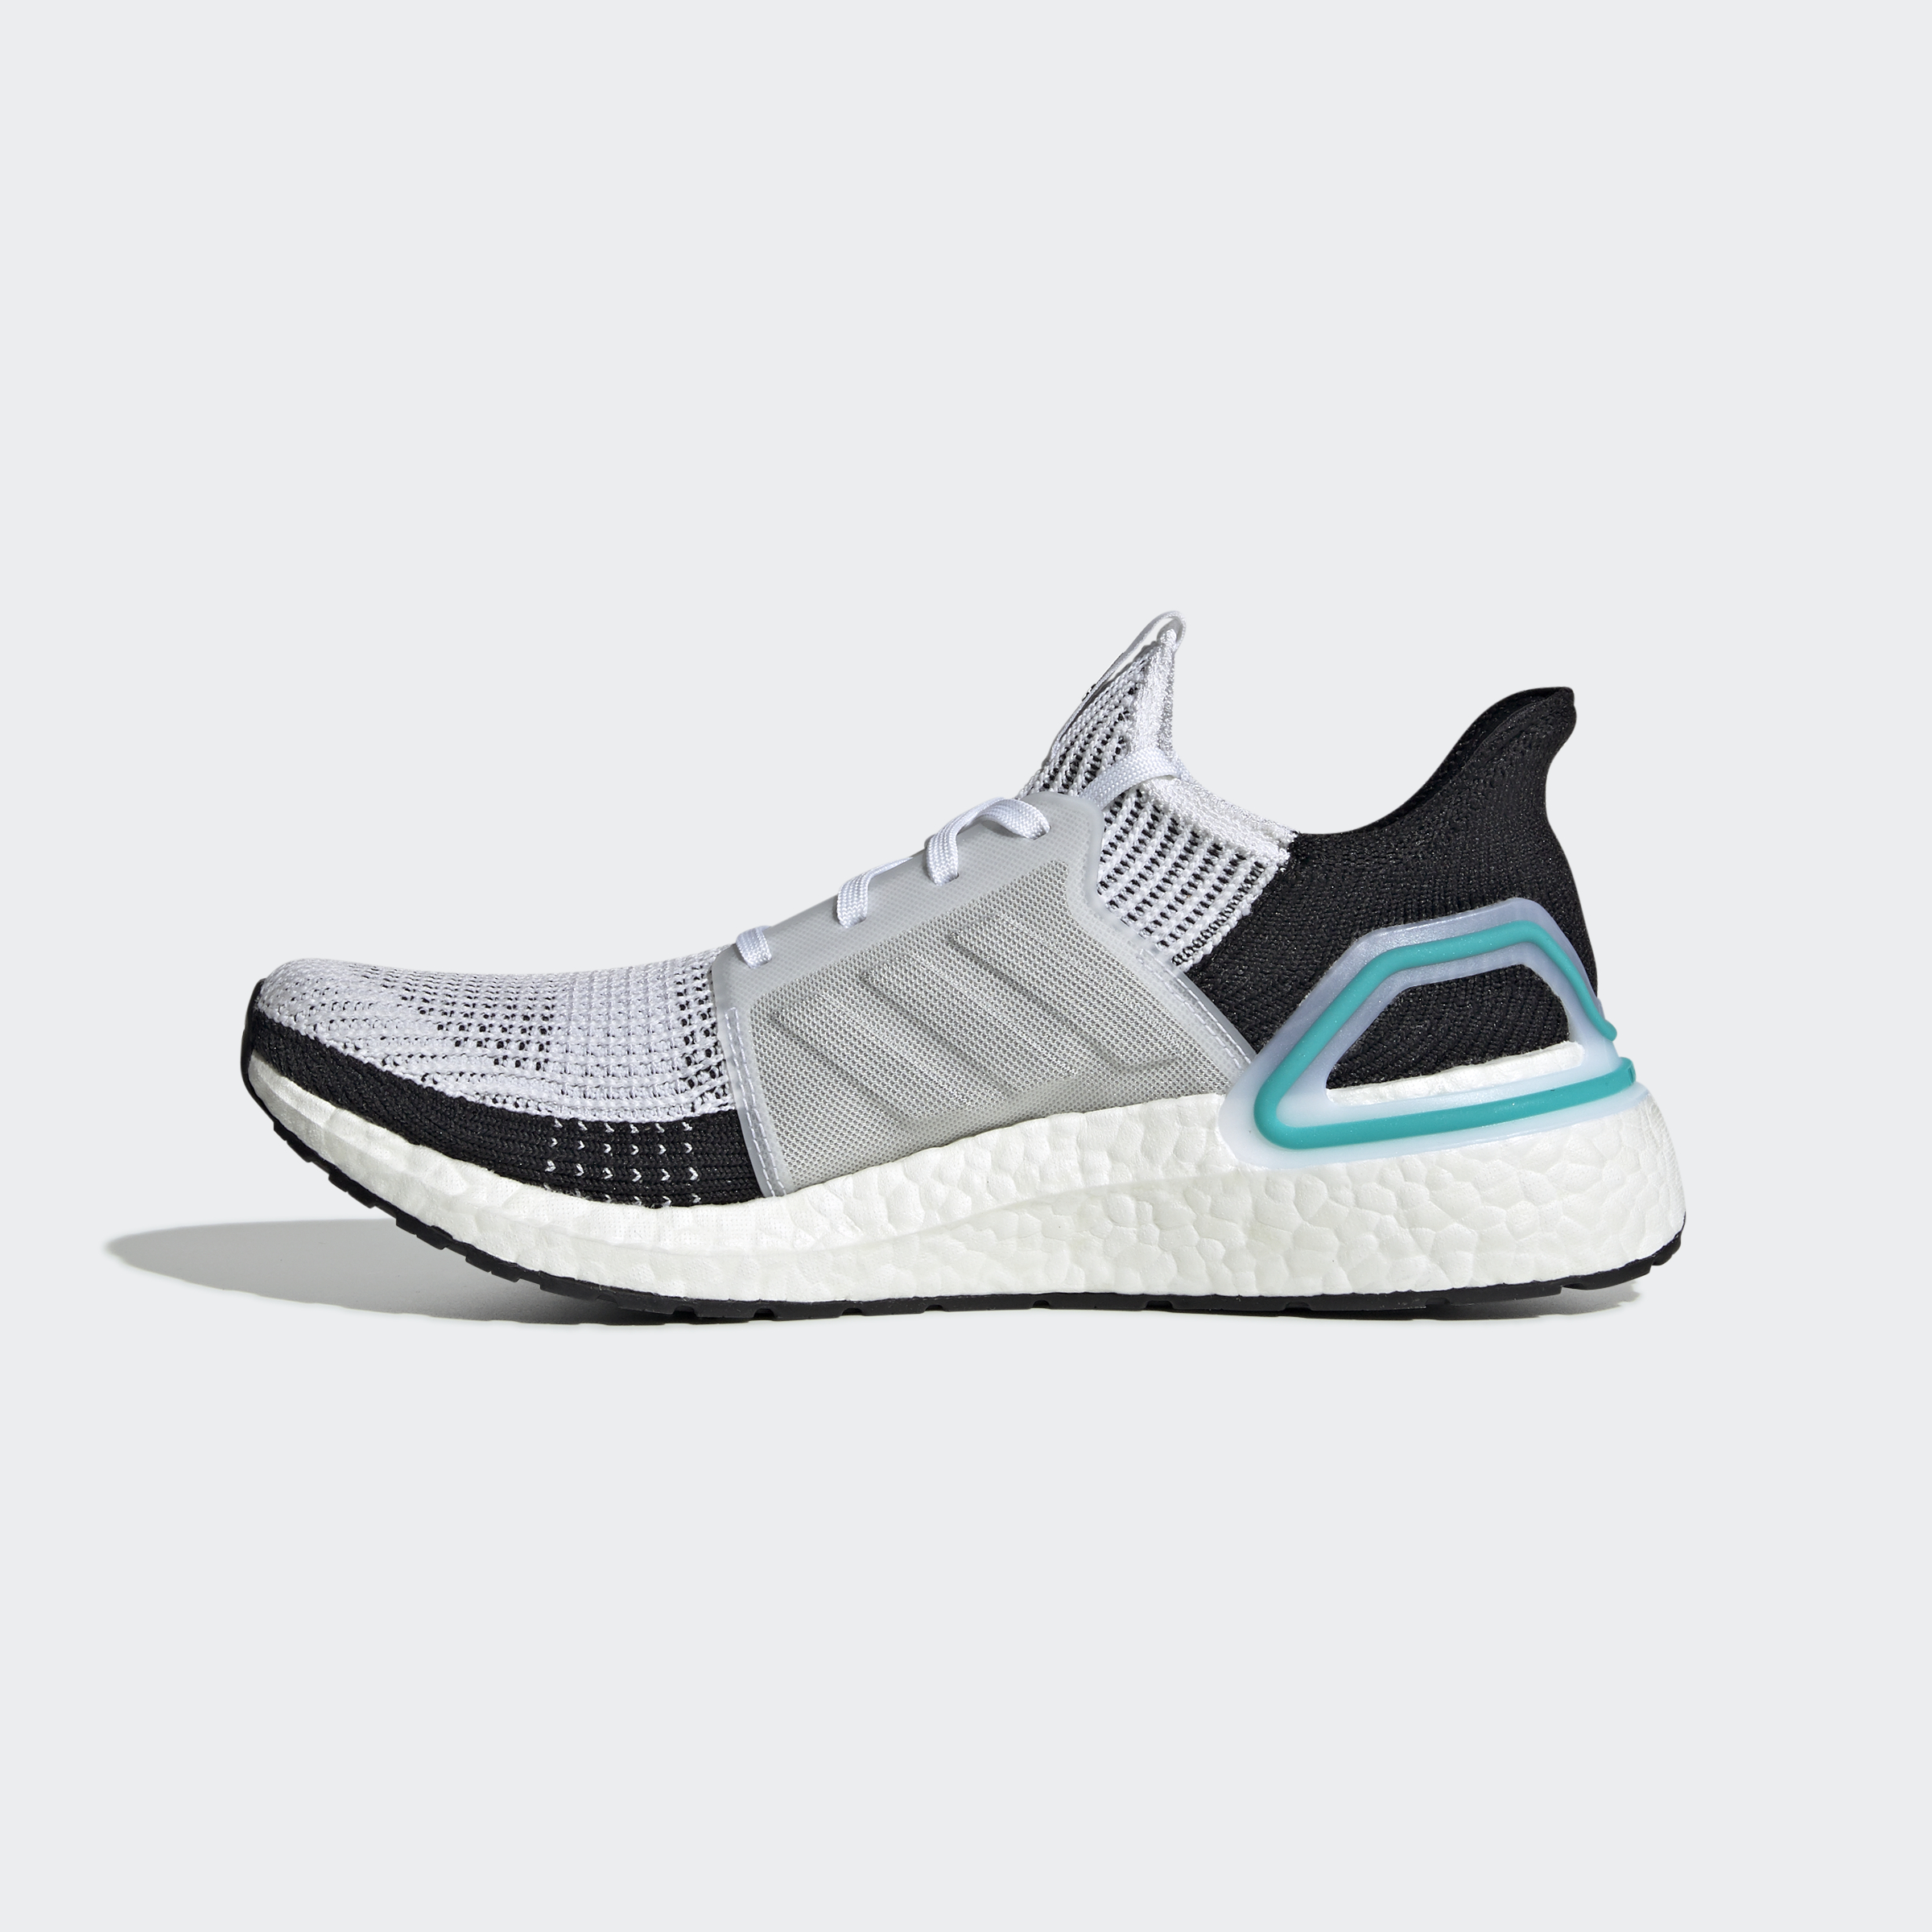 adidas-Ultraboost-19-Shoes-Athletic-amp-Sneakers thumbnail 141